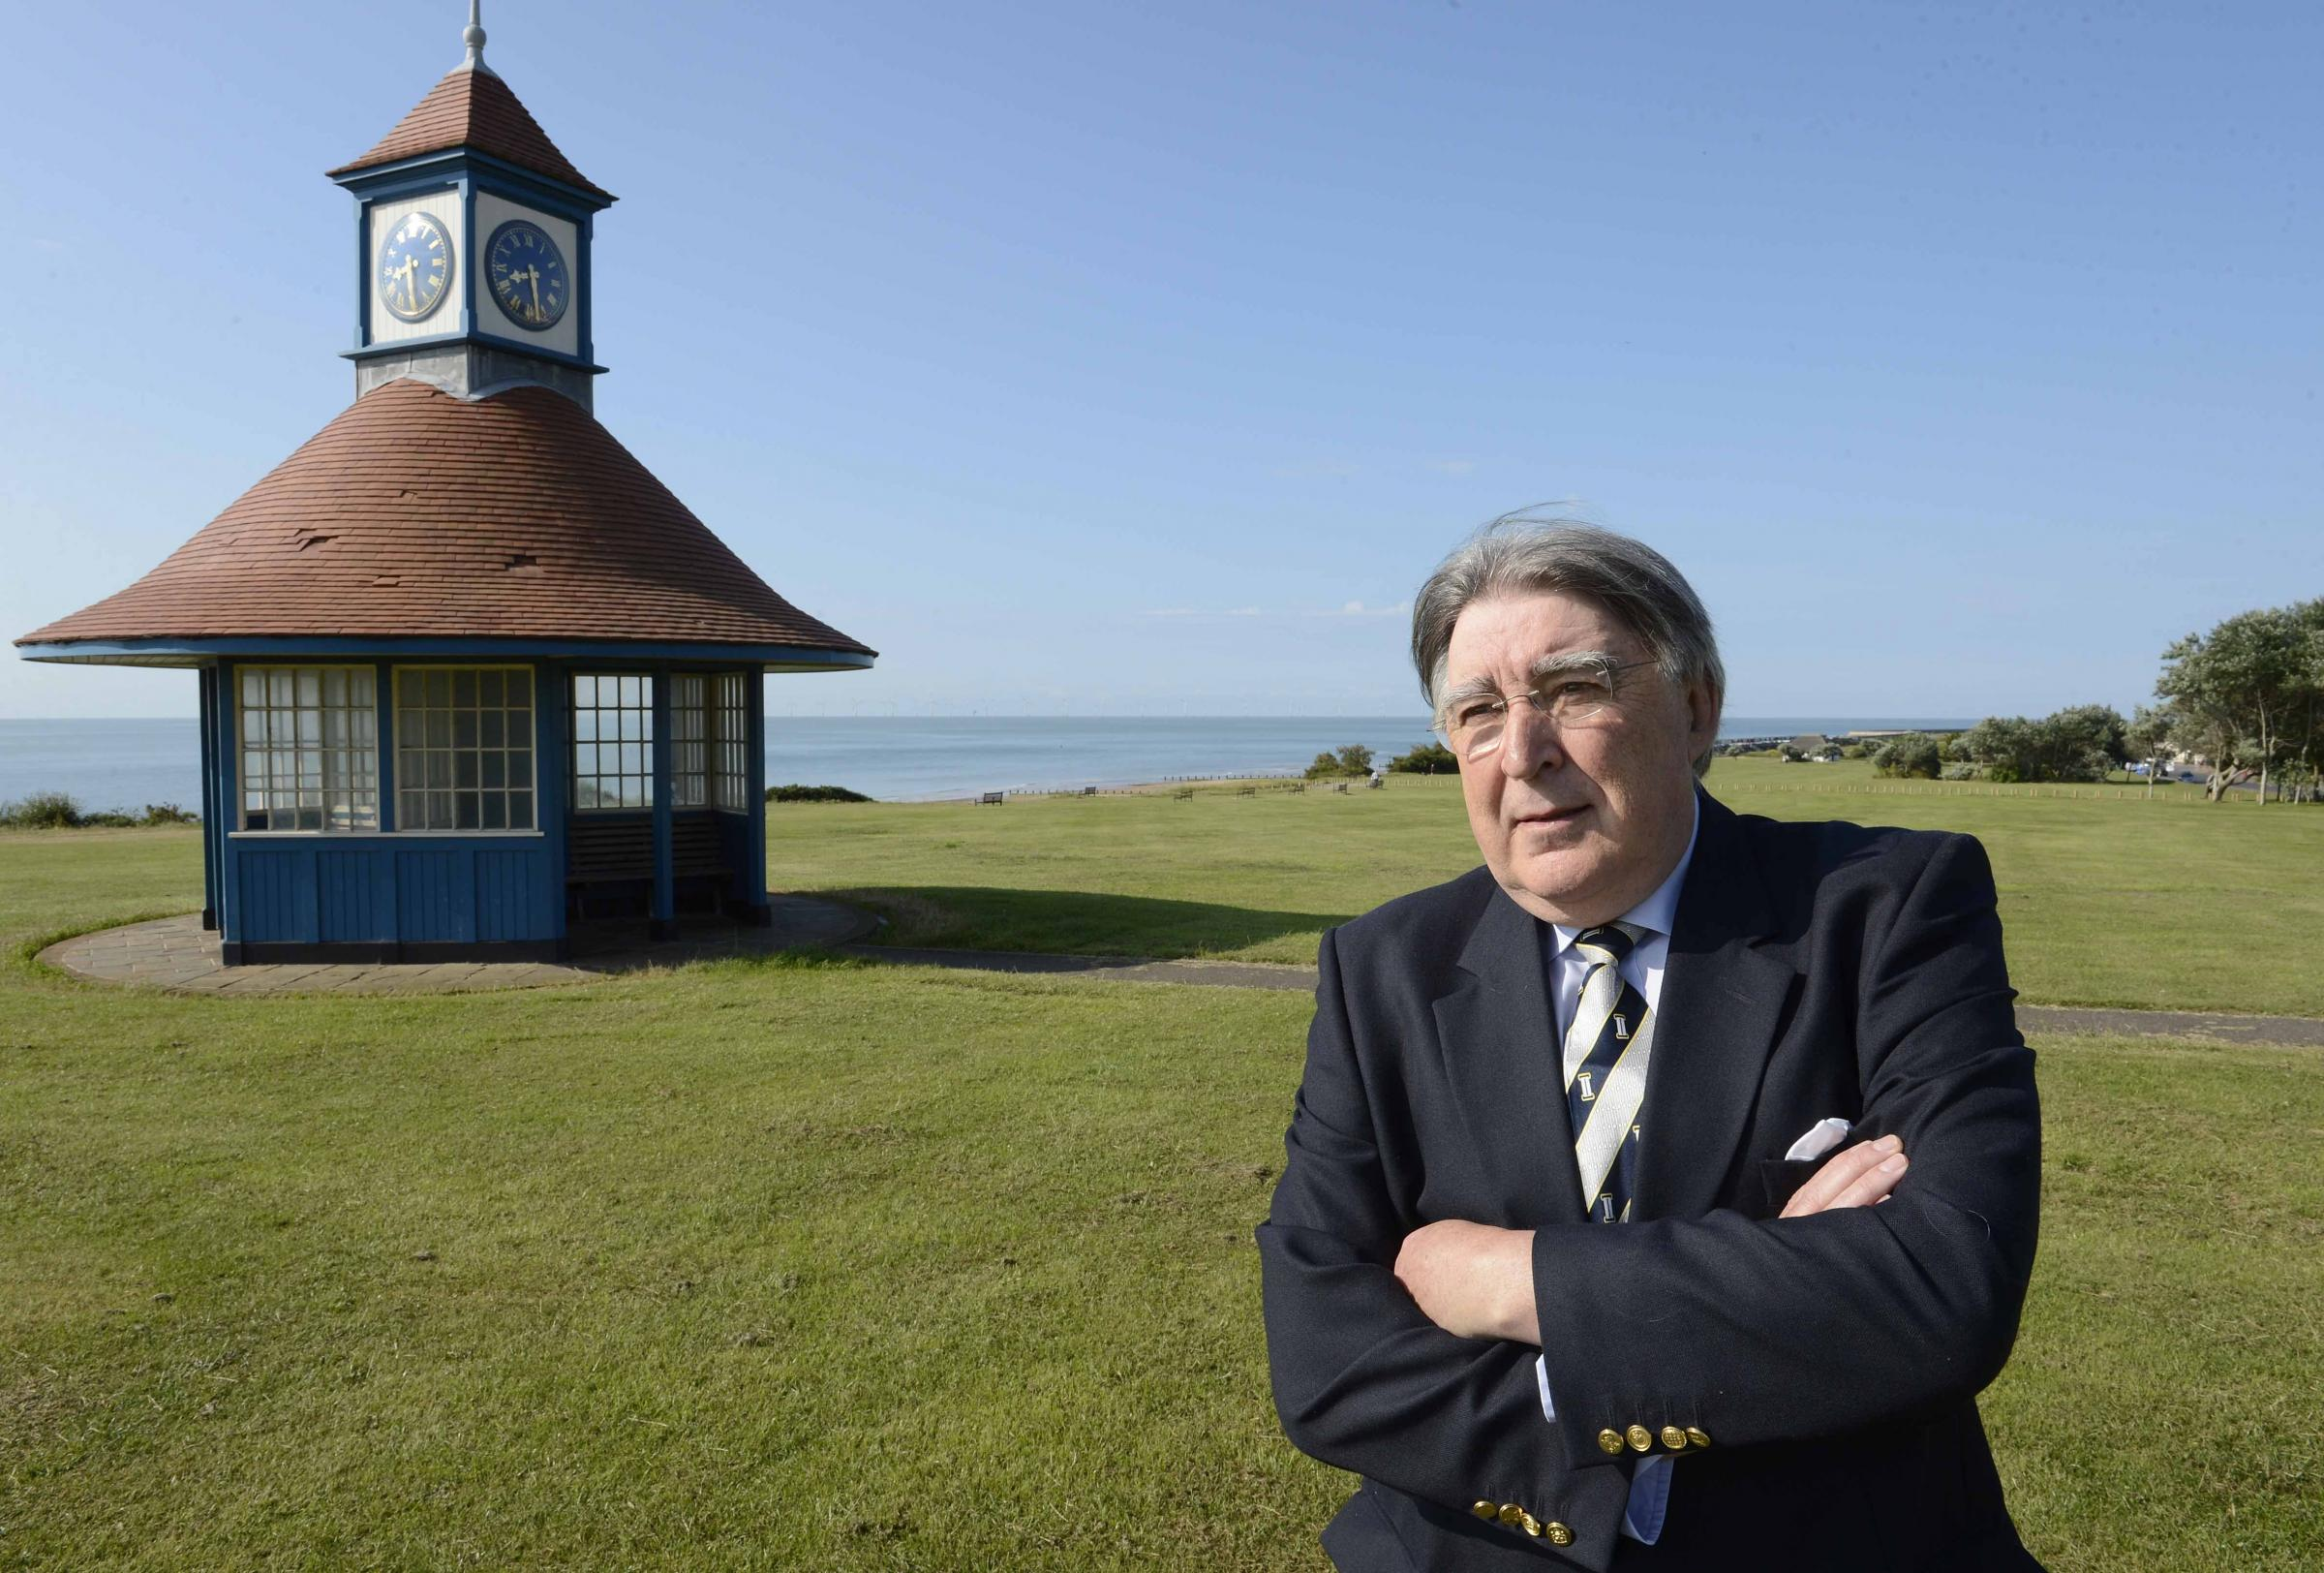 Playtime - Frinton councillor Terry Allen pictyred on the town's iconic Greensward